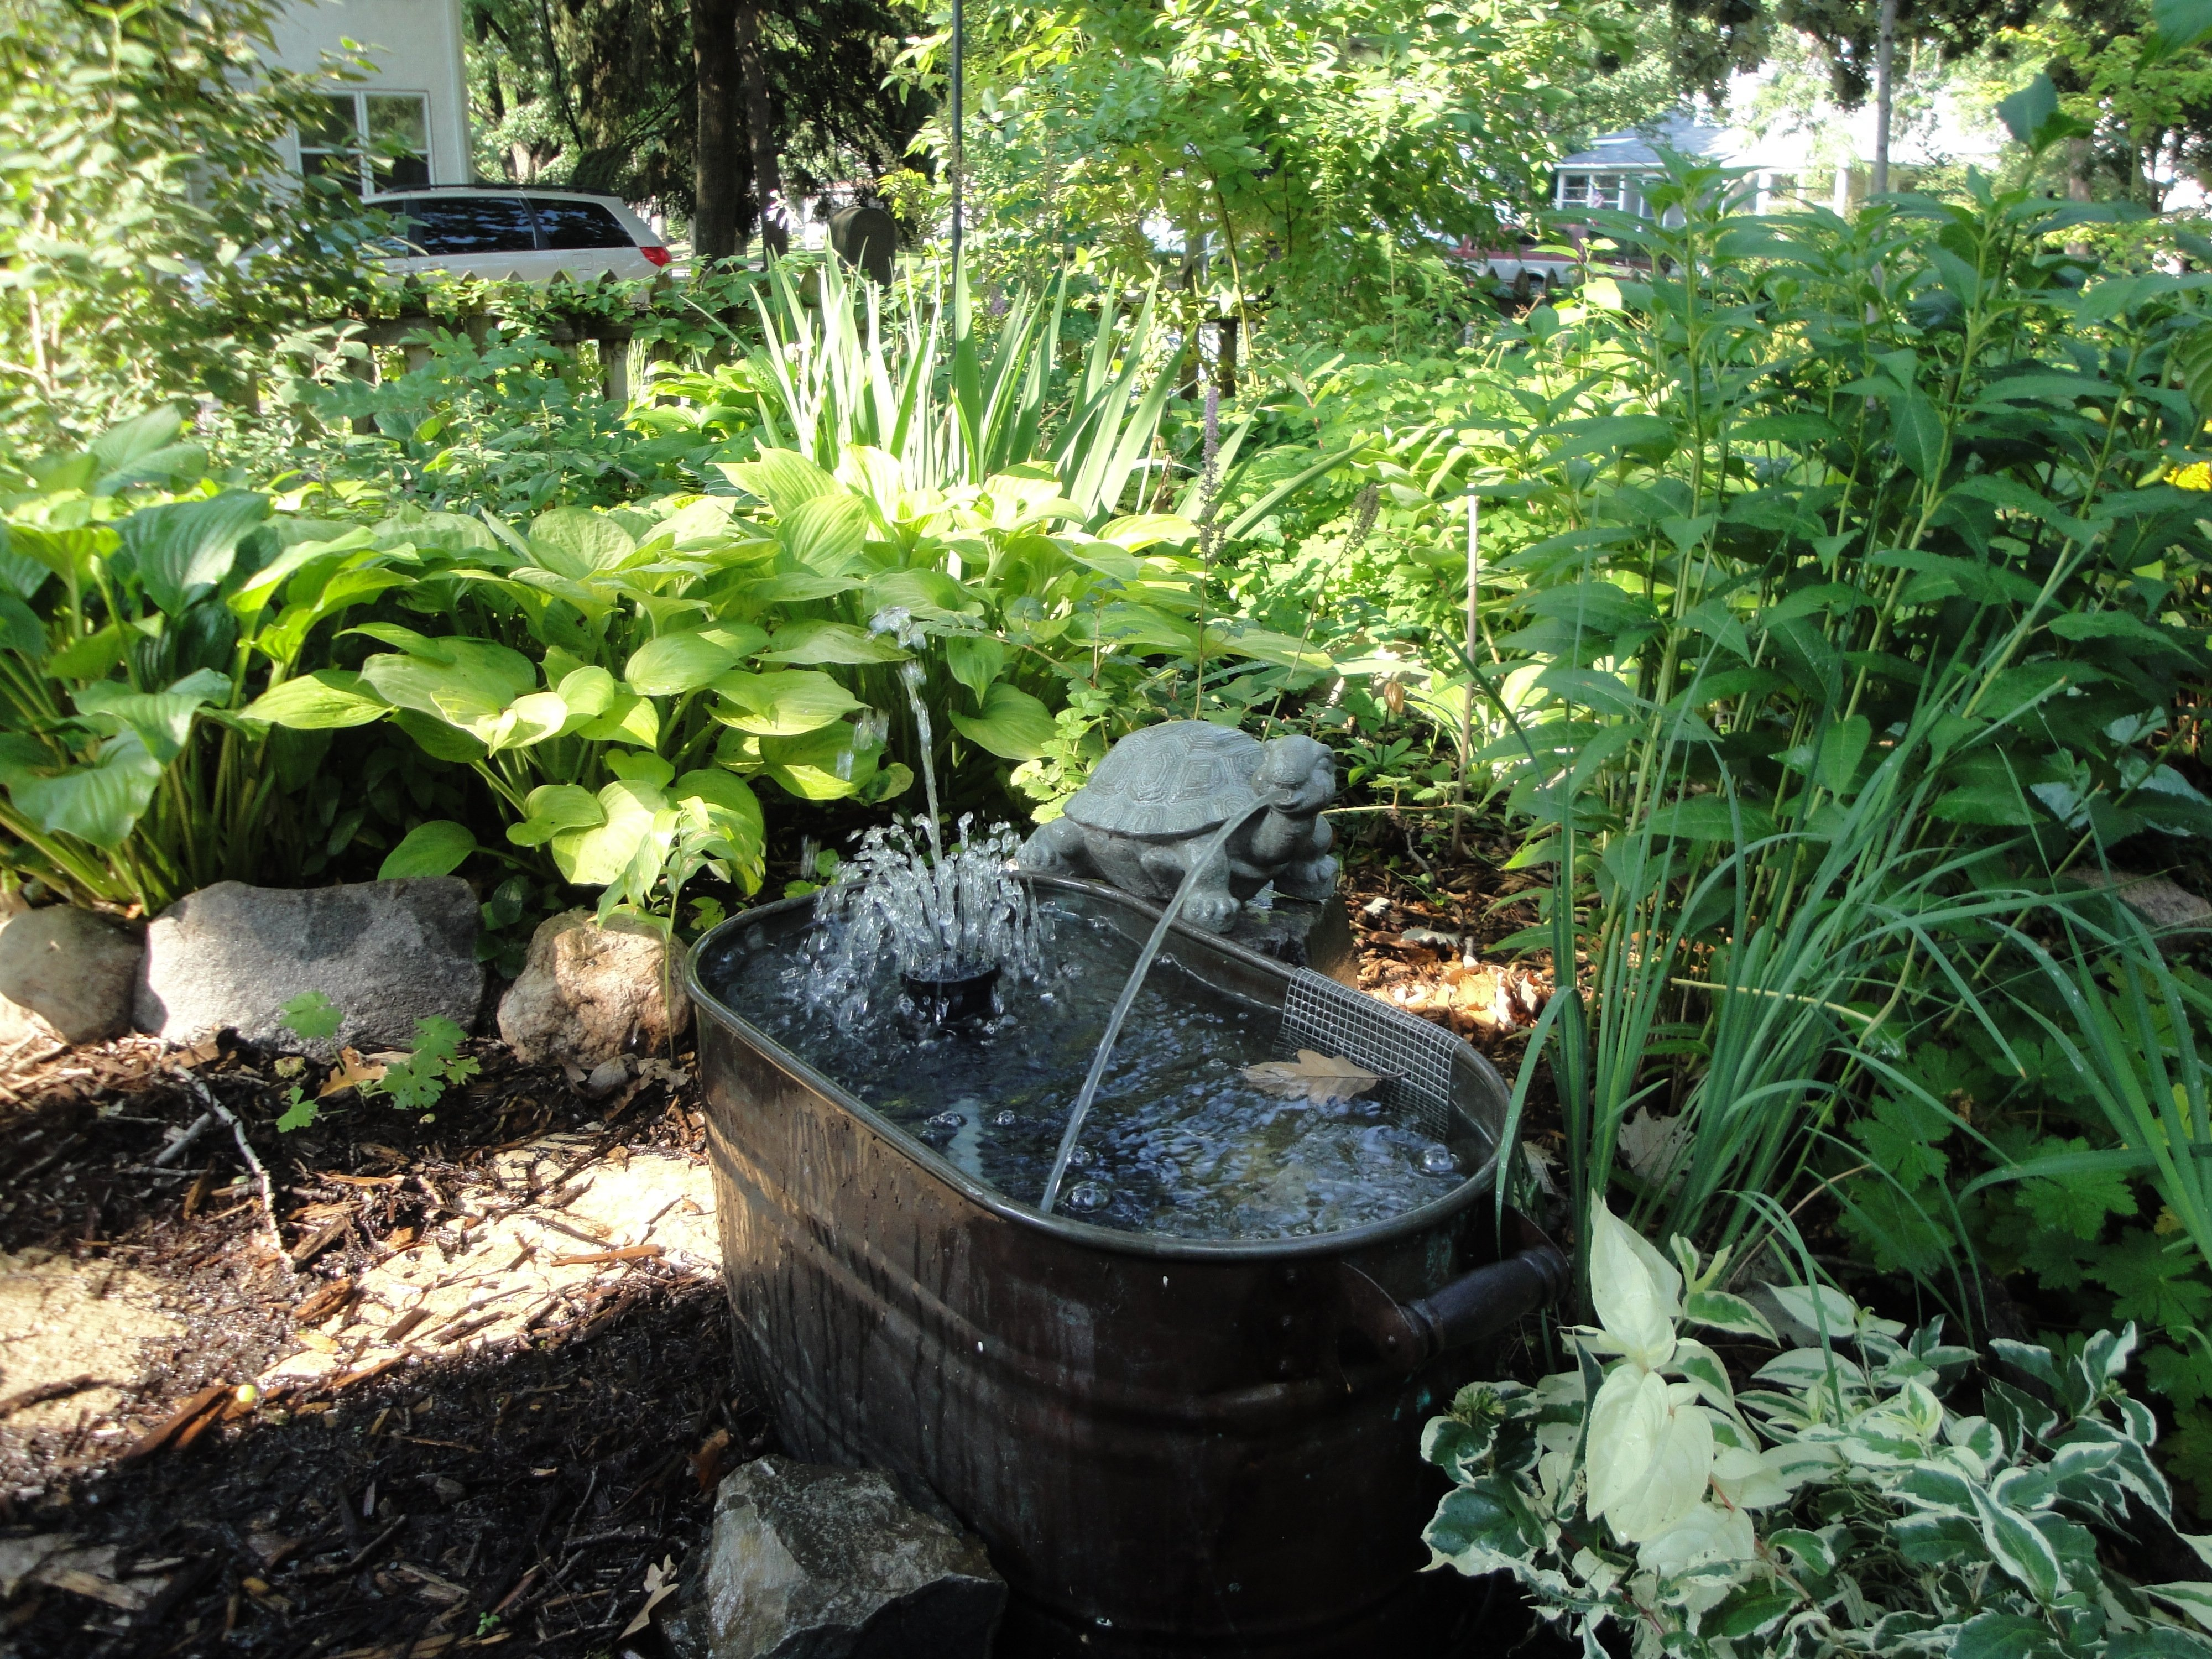 10 Perfect Water Feature Ideas For Small Gardens home garden designs landscaping water fountains ideas dma homes 2020